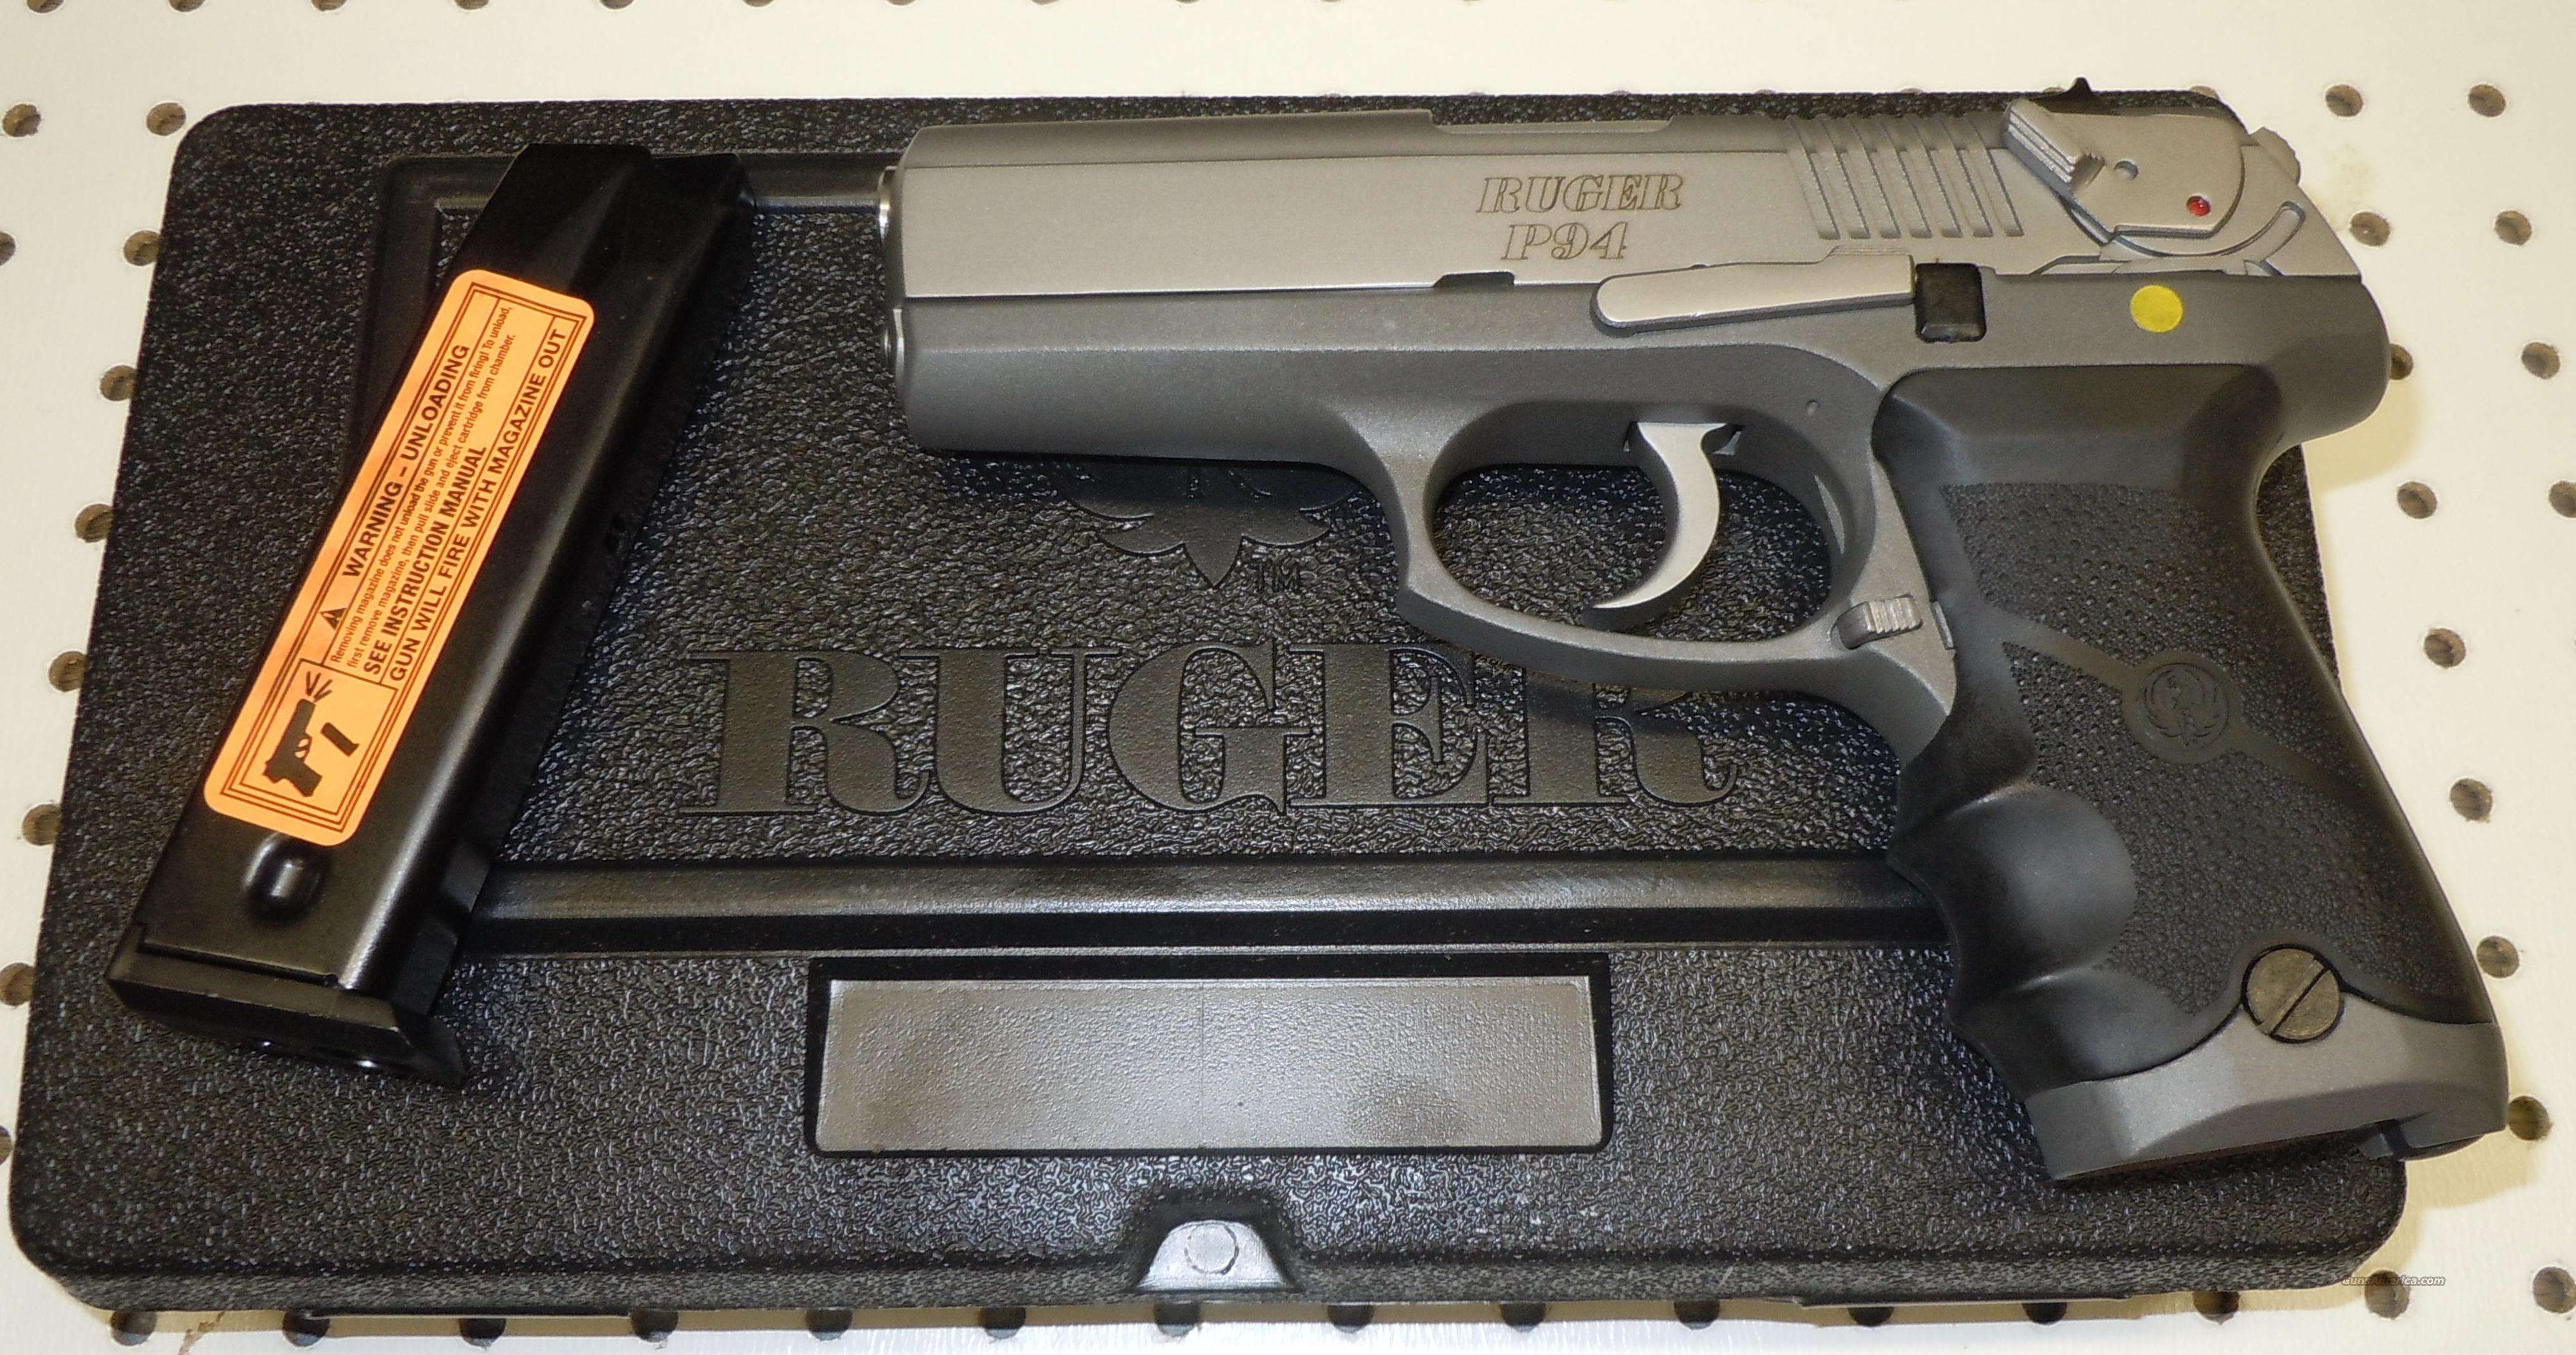 RUGER P944 40S&W PISTOL W/ HOGUE GRIPS (KP944TH) (03428) *OUT OF PRODUCTION*  Guns > Pistols > Ruger Semi-Auto Pistols > P-Series